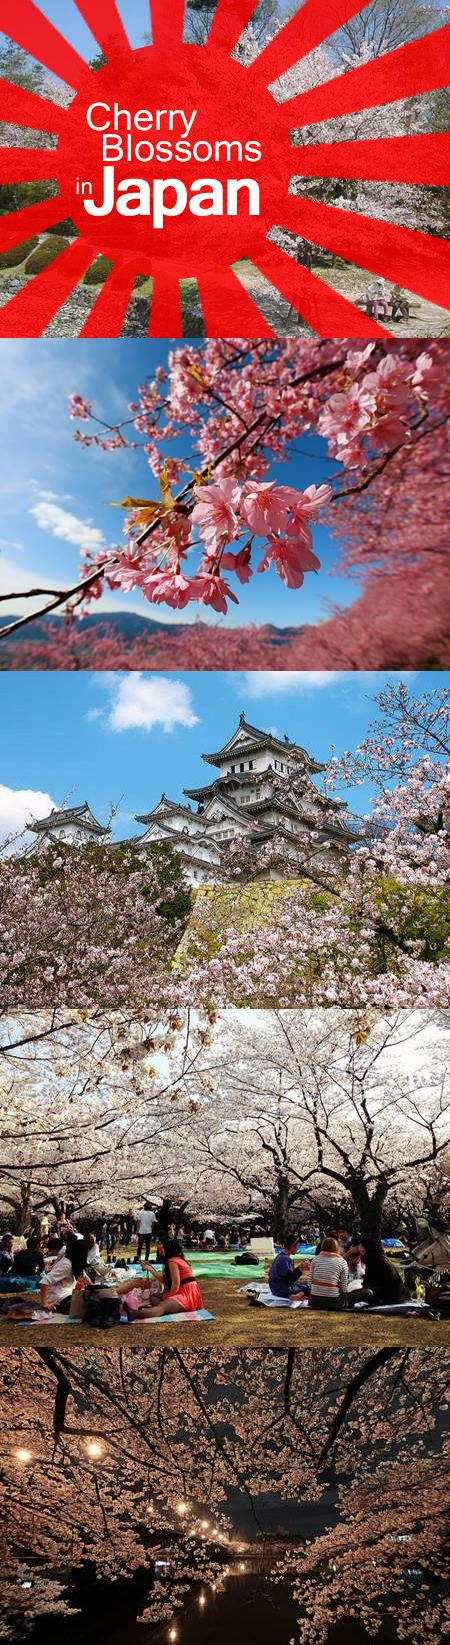 ~Follow these tips on when and where to see cherry blossoms (called sakura in Japanese) during their peak season | House of Beccaria